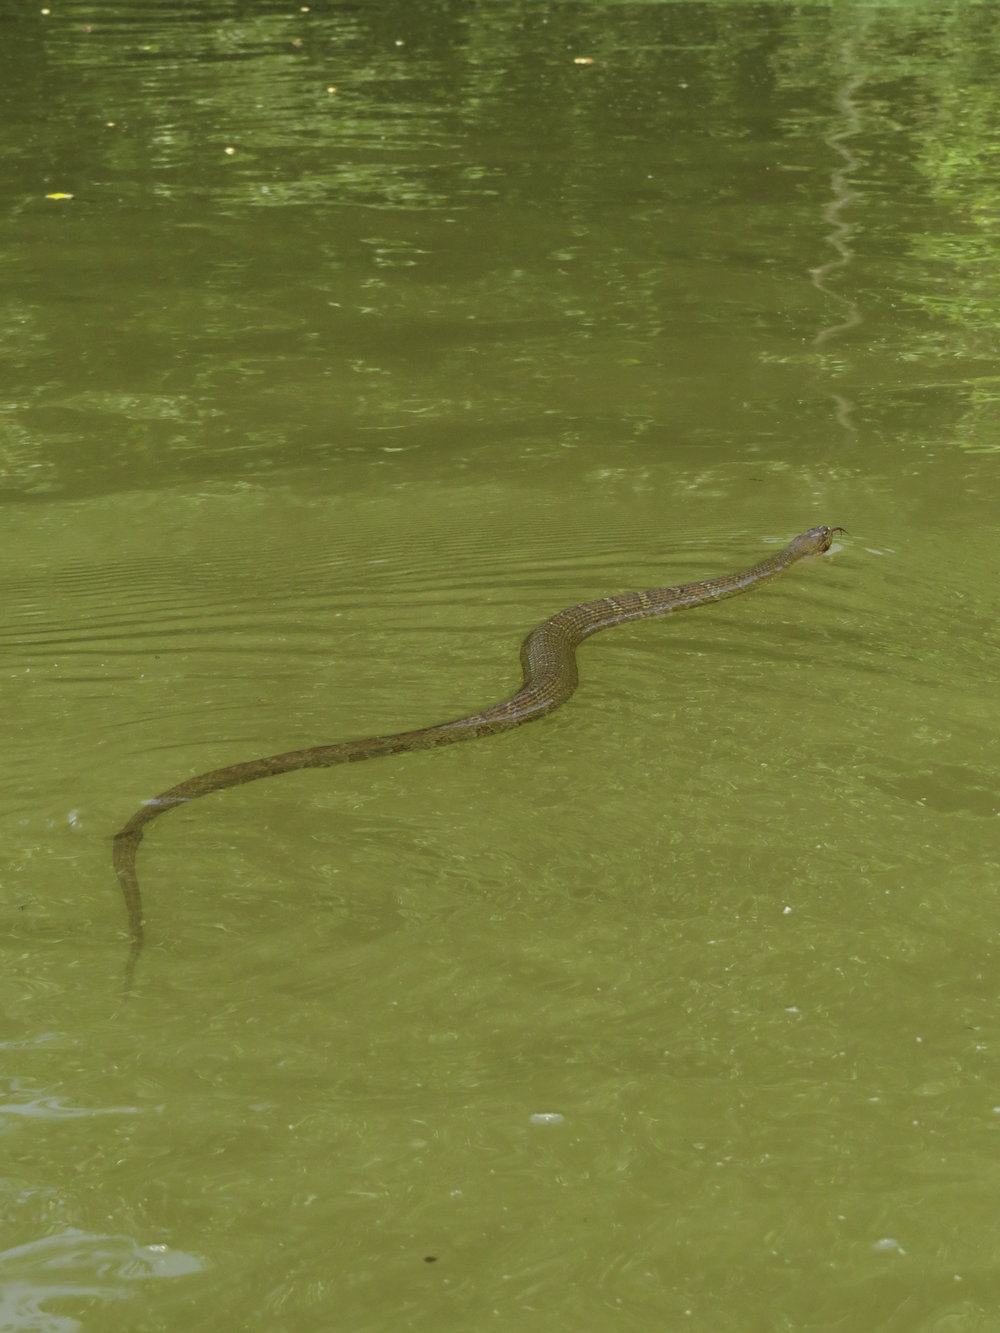 snake-kayaking-maryland-water-nature-outdoors-c&o-canal-potomac-river